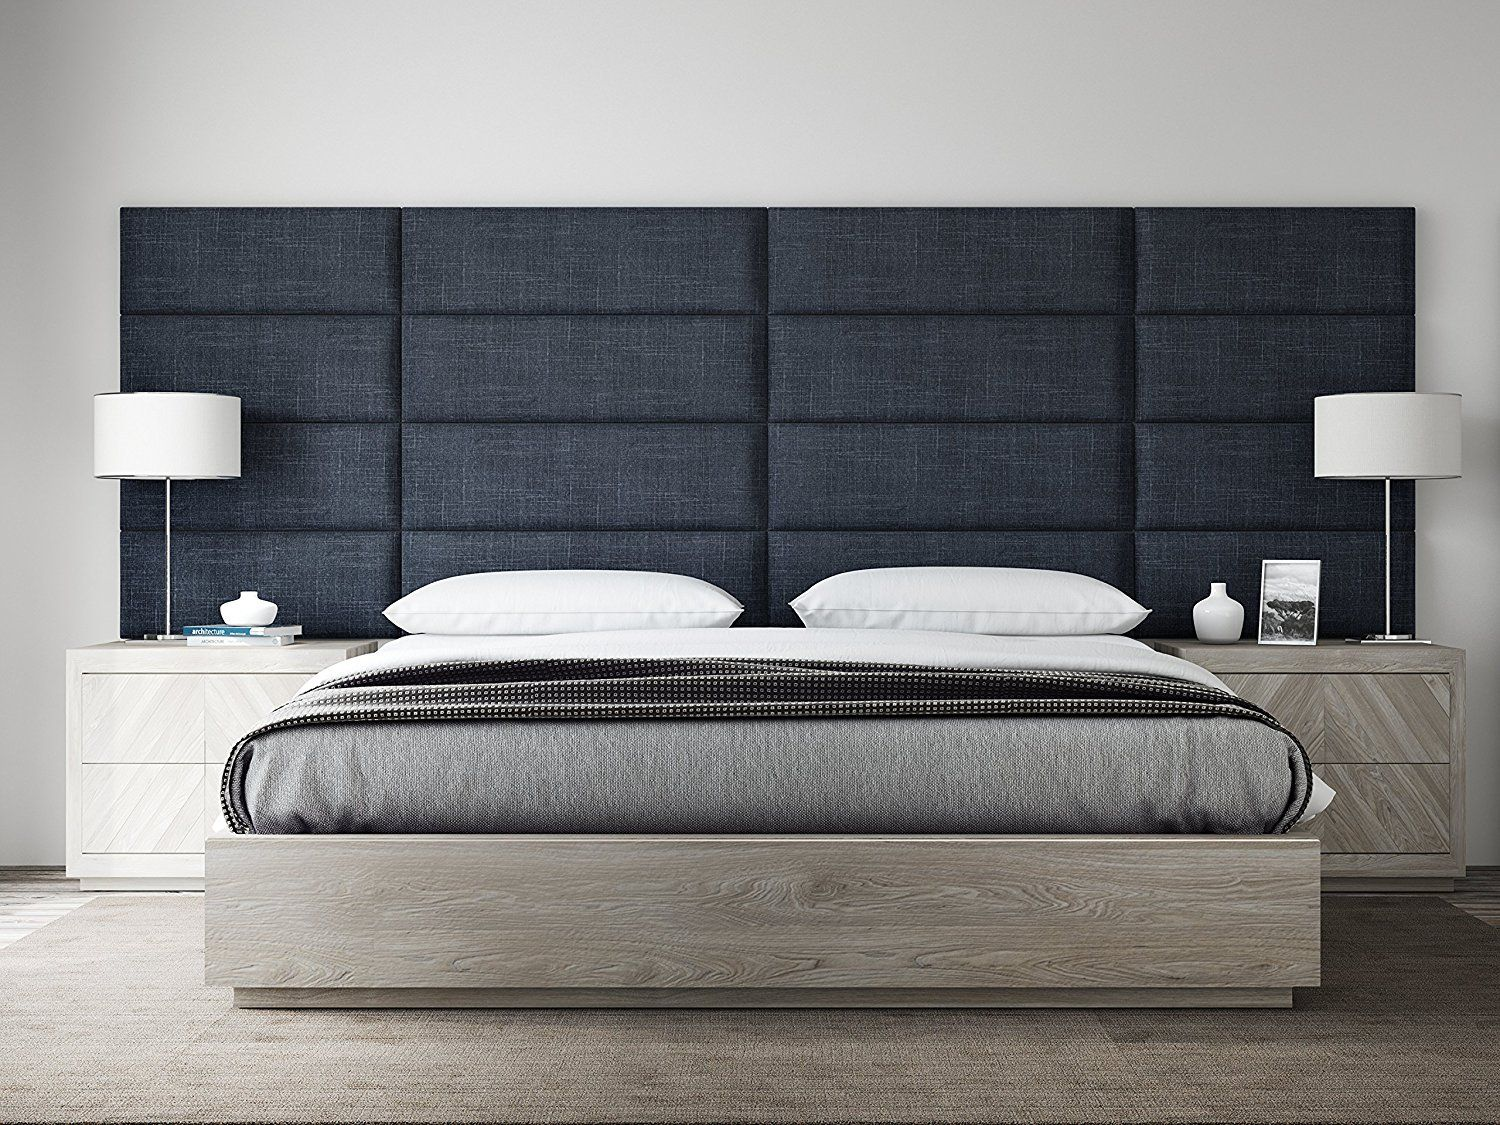 Amazon Com Vant Upholstered Headboards Accent Wall Panels Packs Of 4 Textured Cotton Weave Midn Bed Headboard Design Bed Furniture Bed Furniture Design